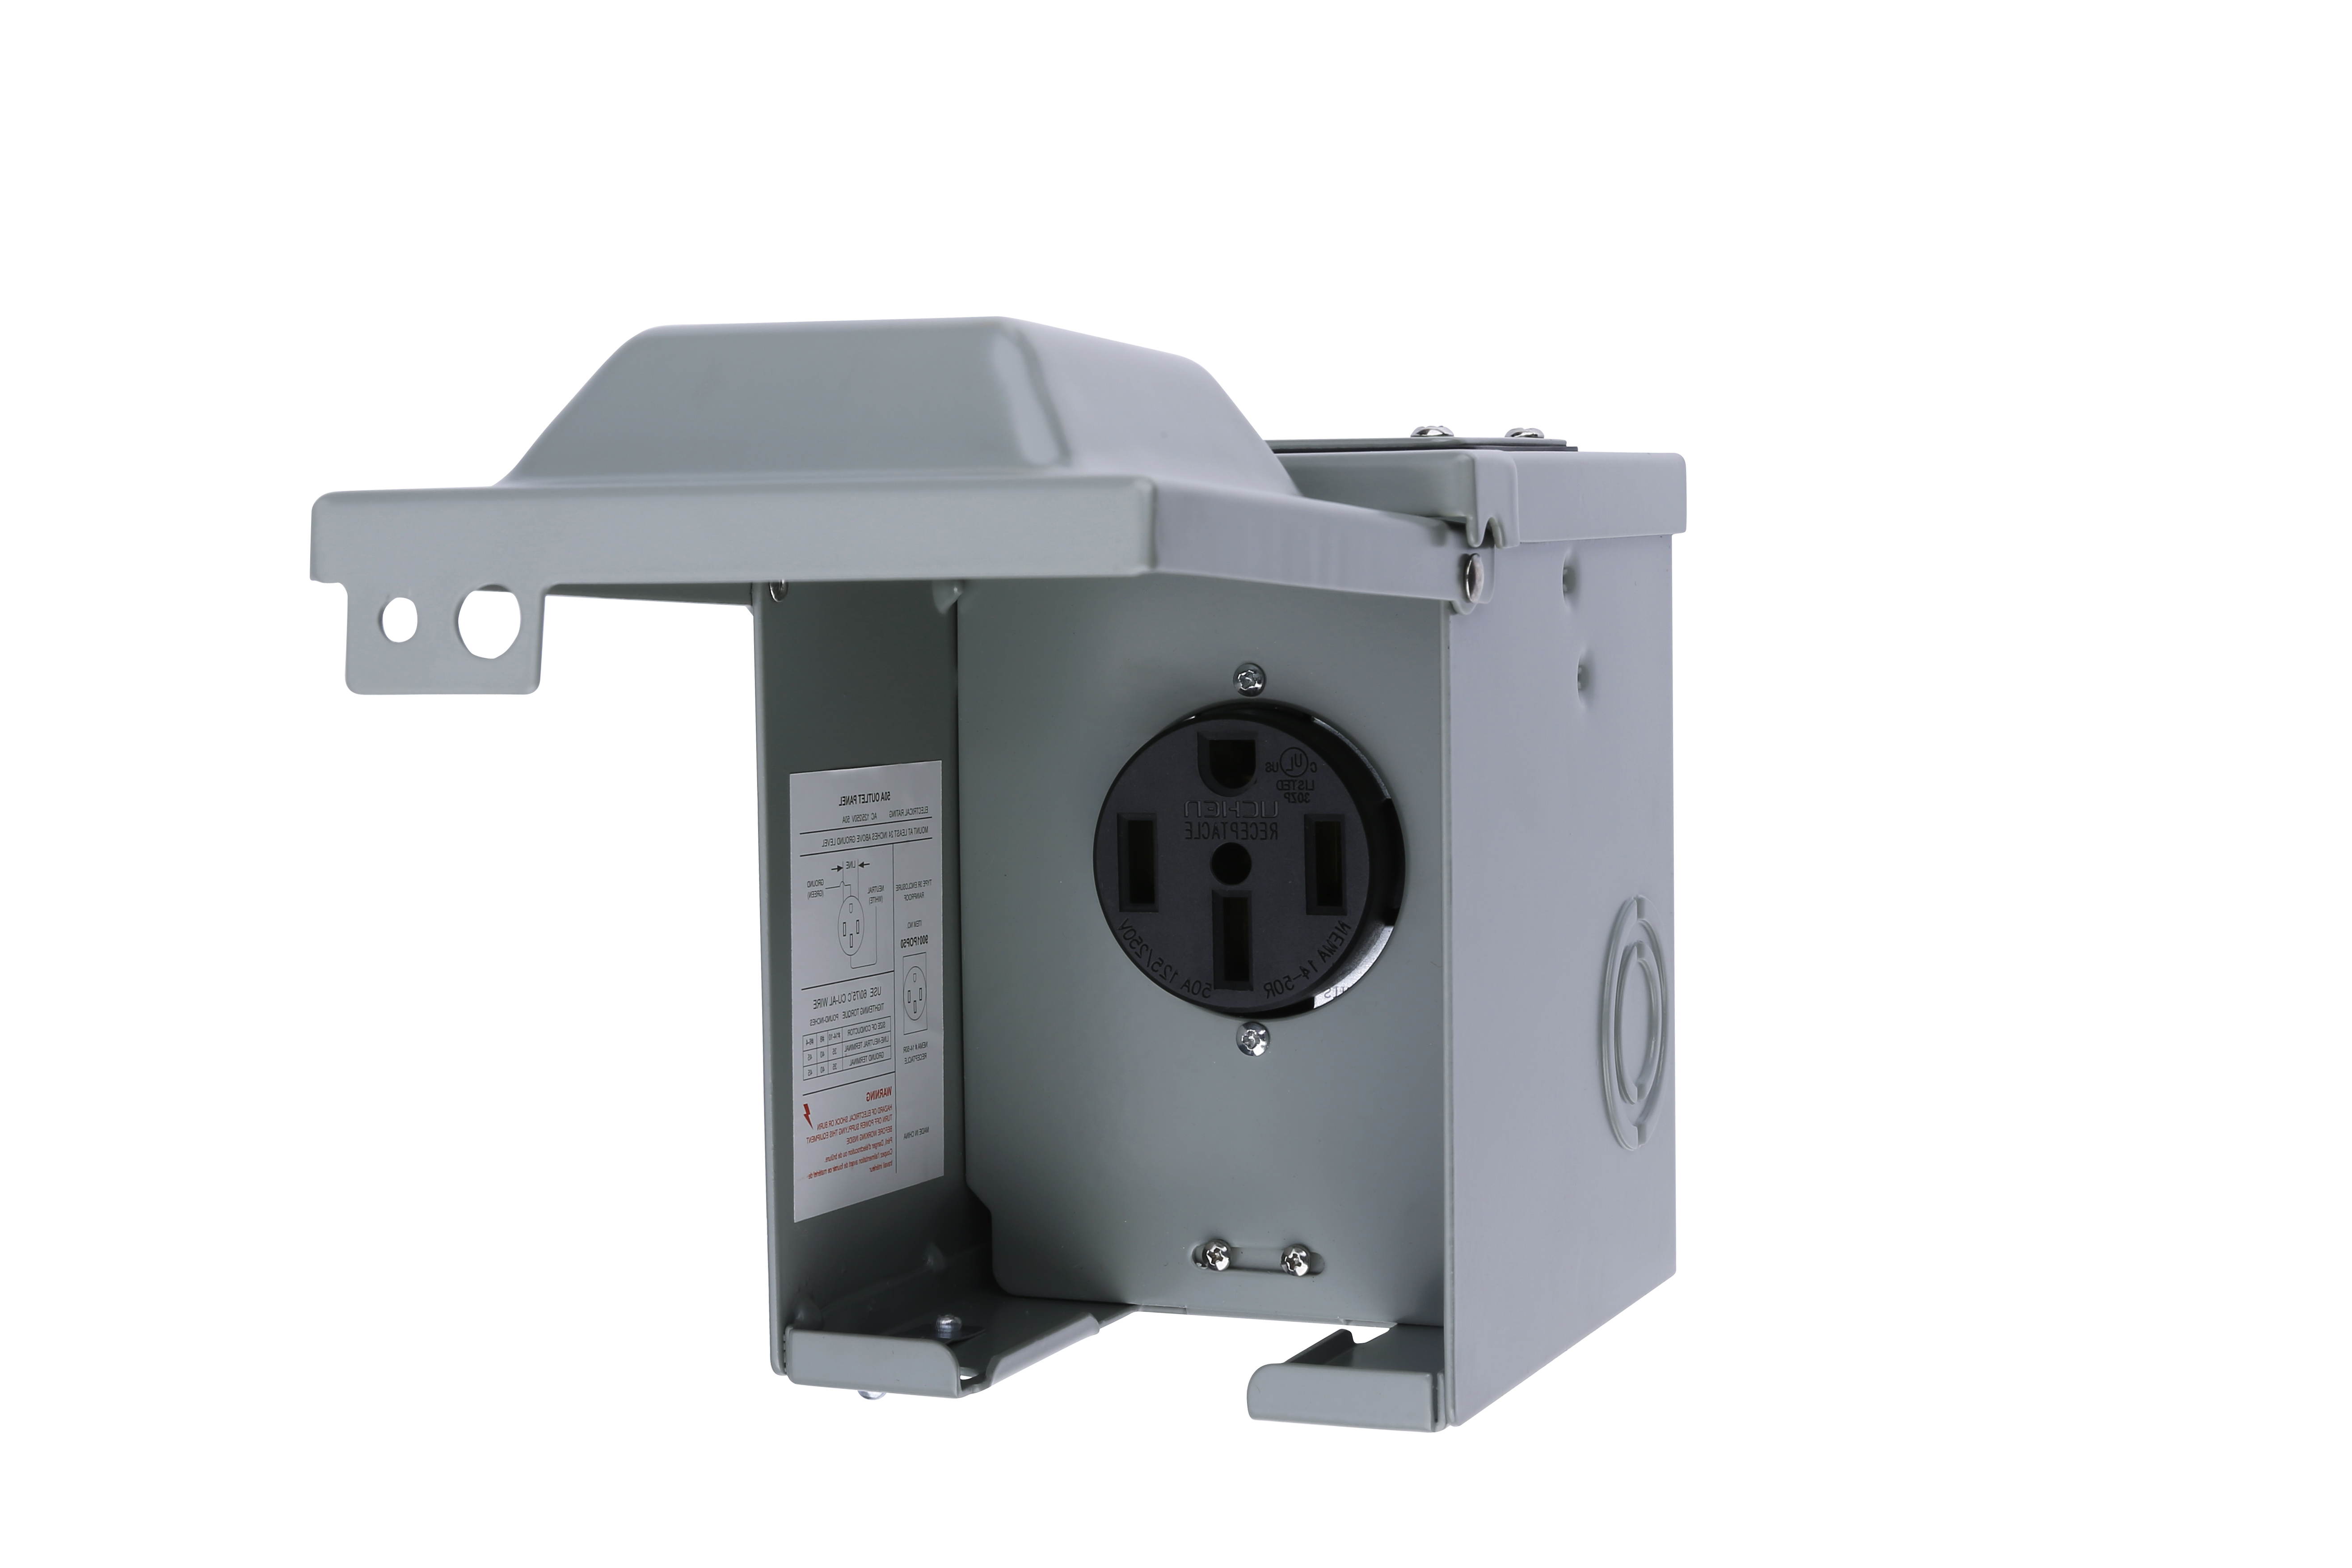 50 Amp 125/250 Volt Power Outlet Box - For RV, Campers, Travel Trailer Image